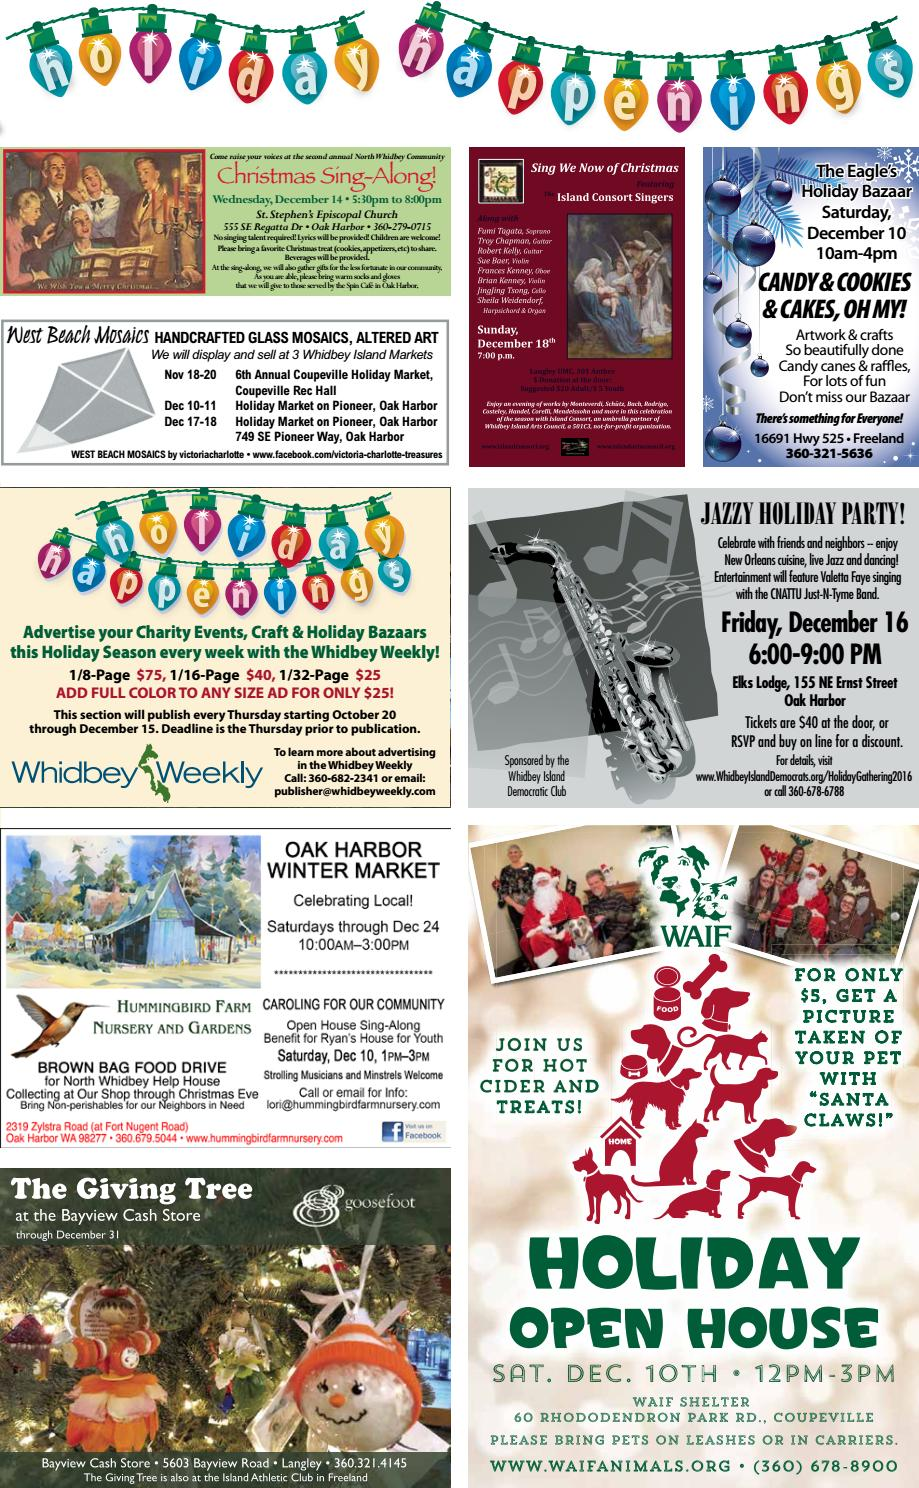 Whidbey Weekly, December 8, 2016 by WhidbeyWeekly.com - issuu